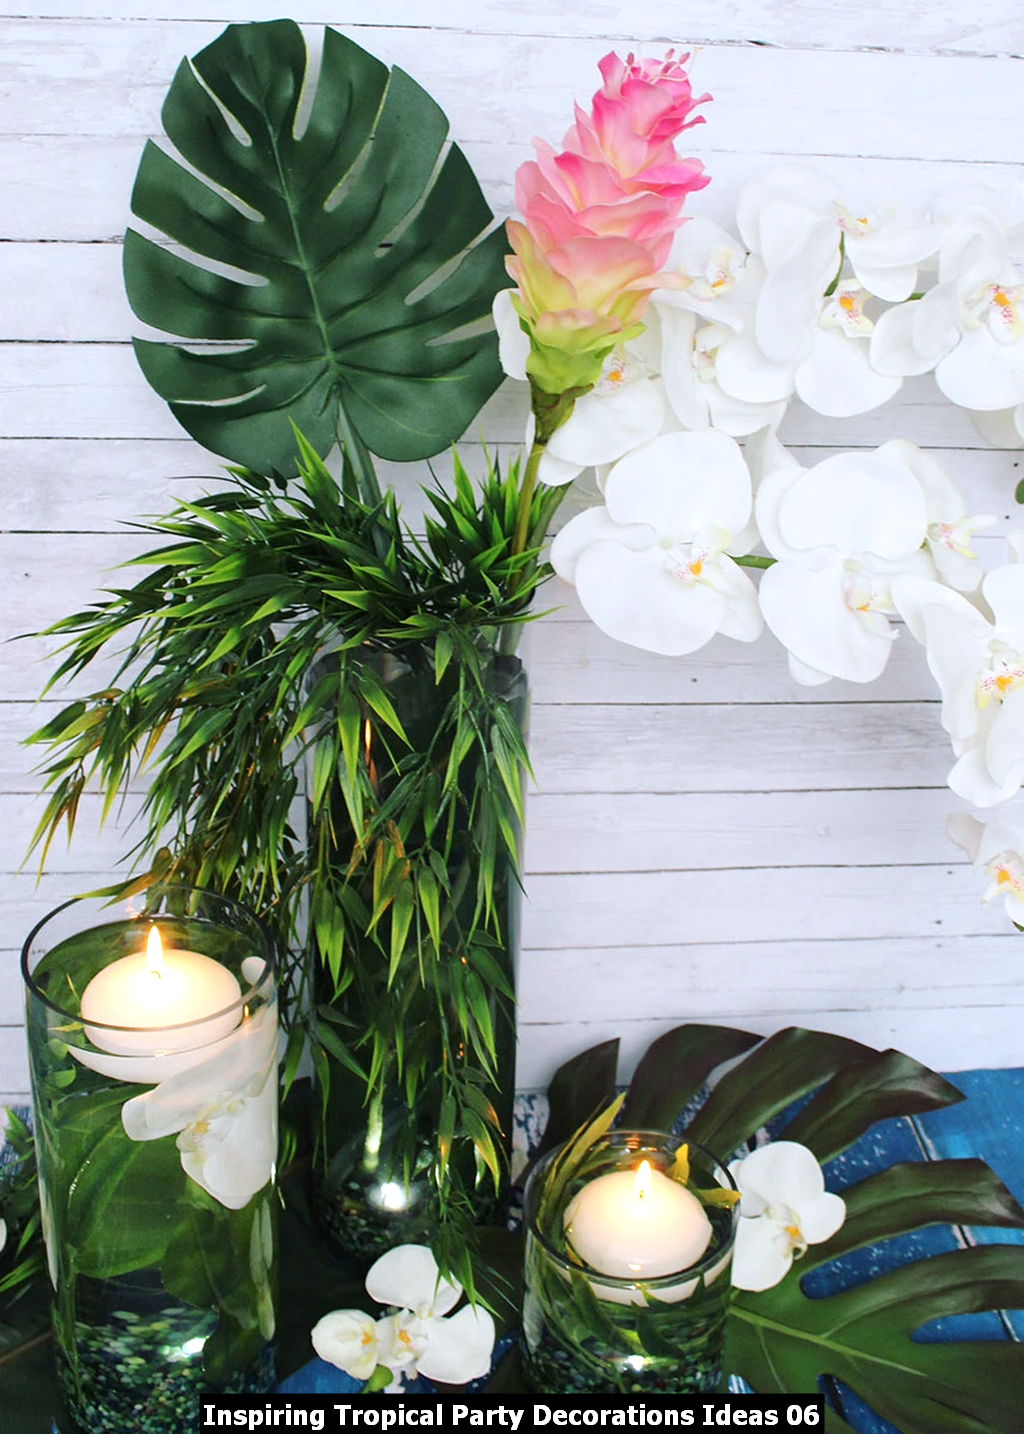 Inspiring Tropical Party Decorations Ideas 06